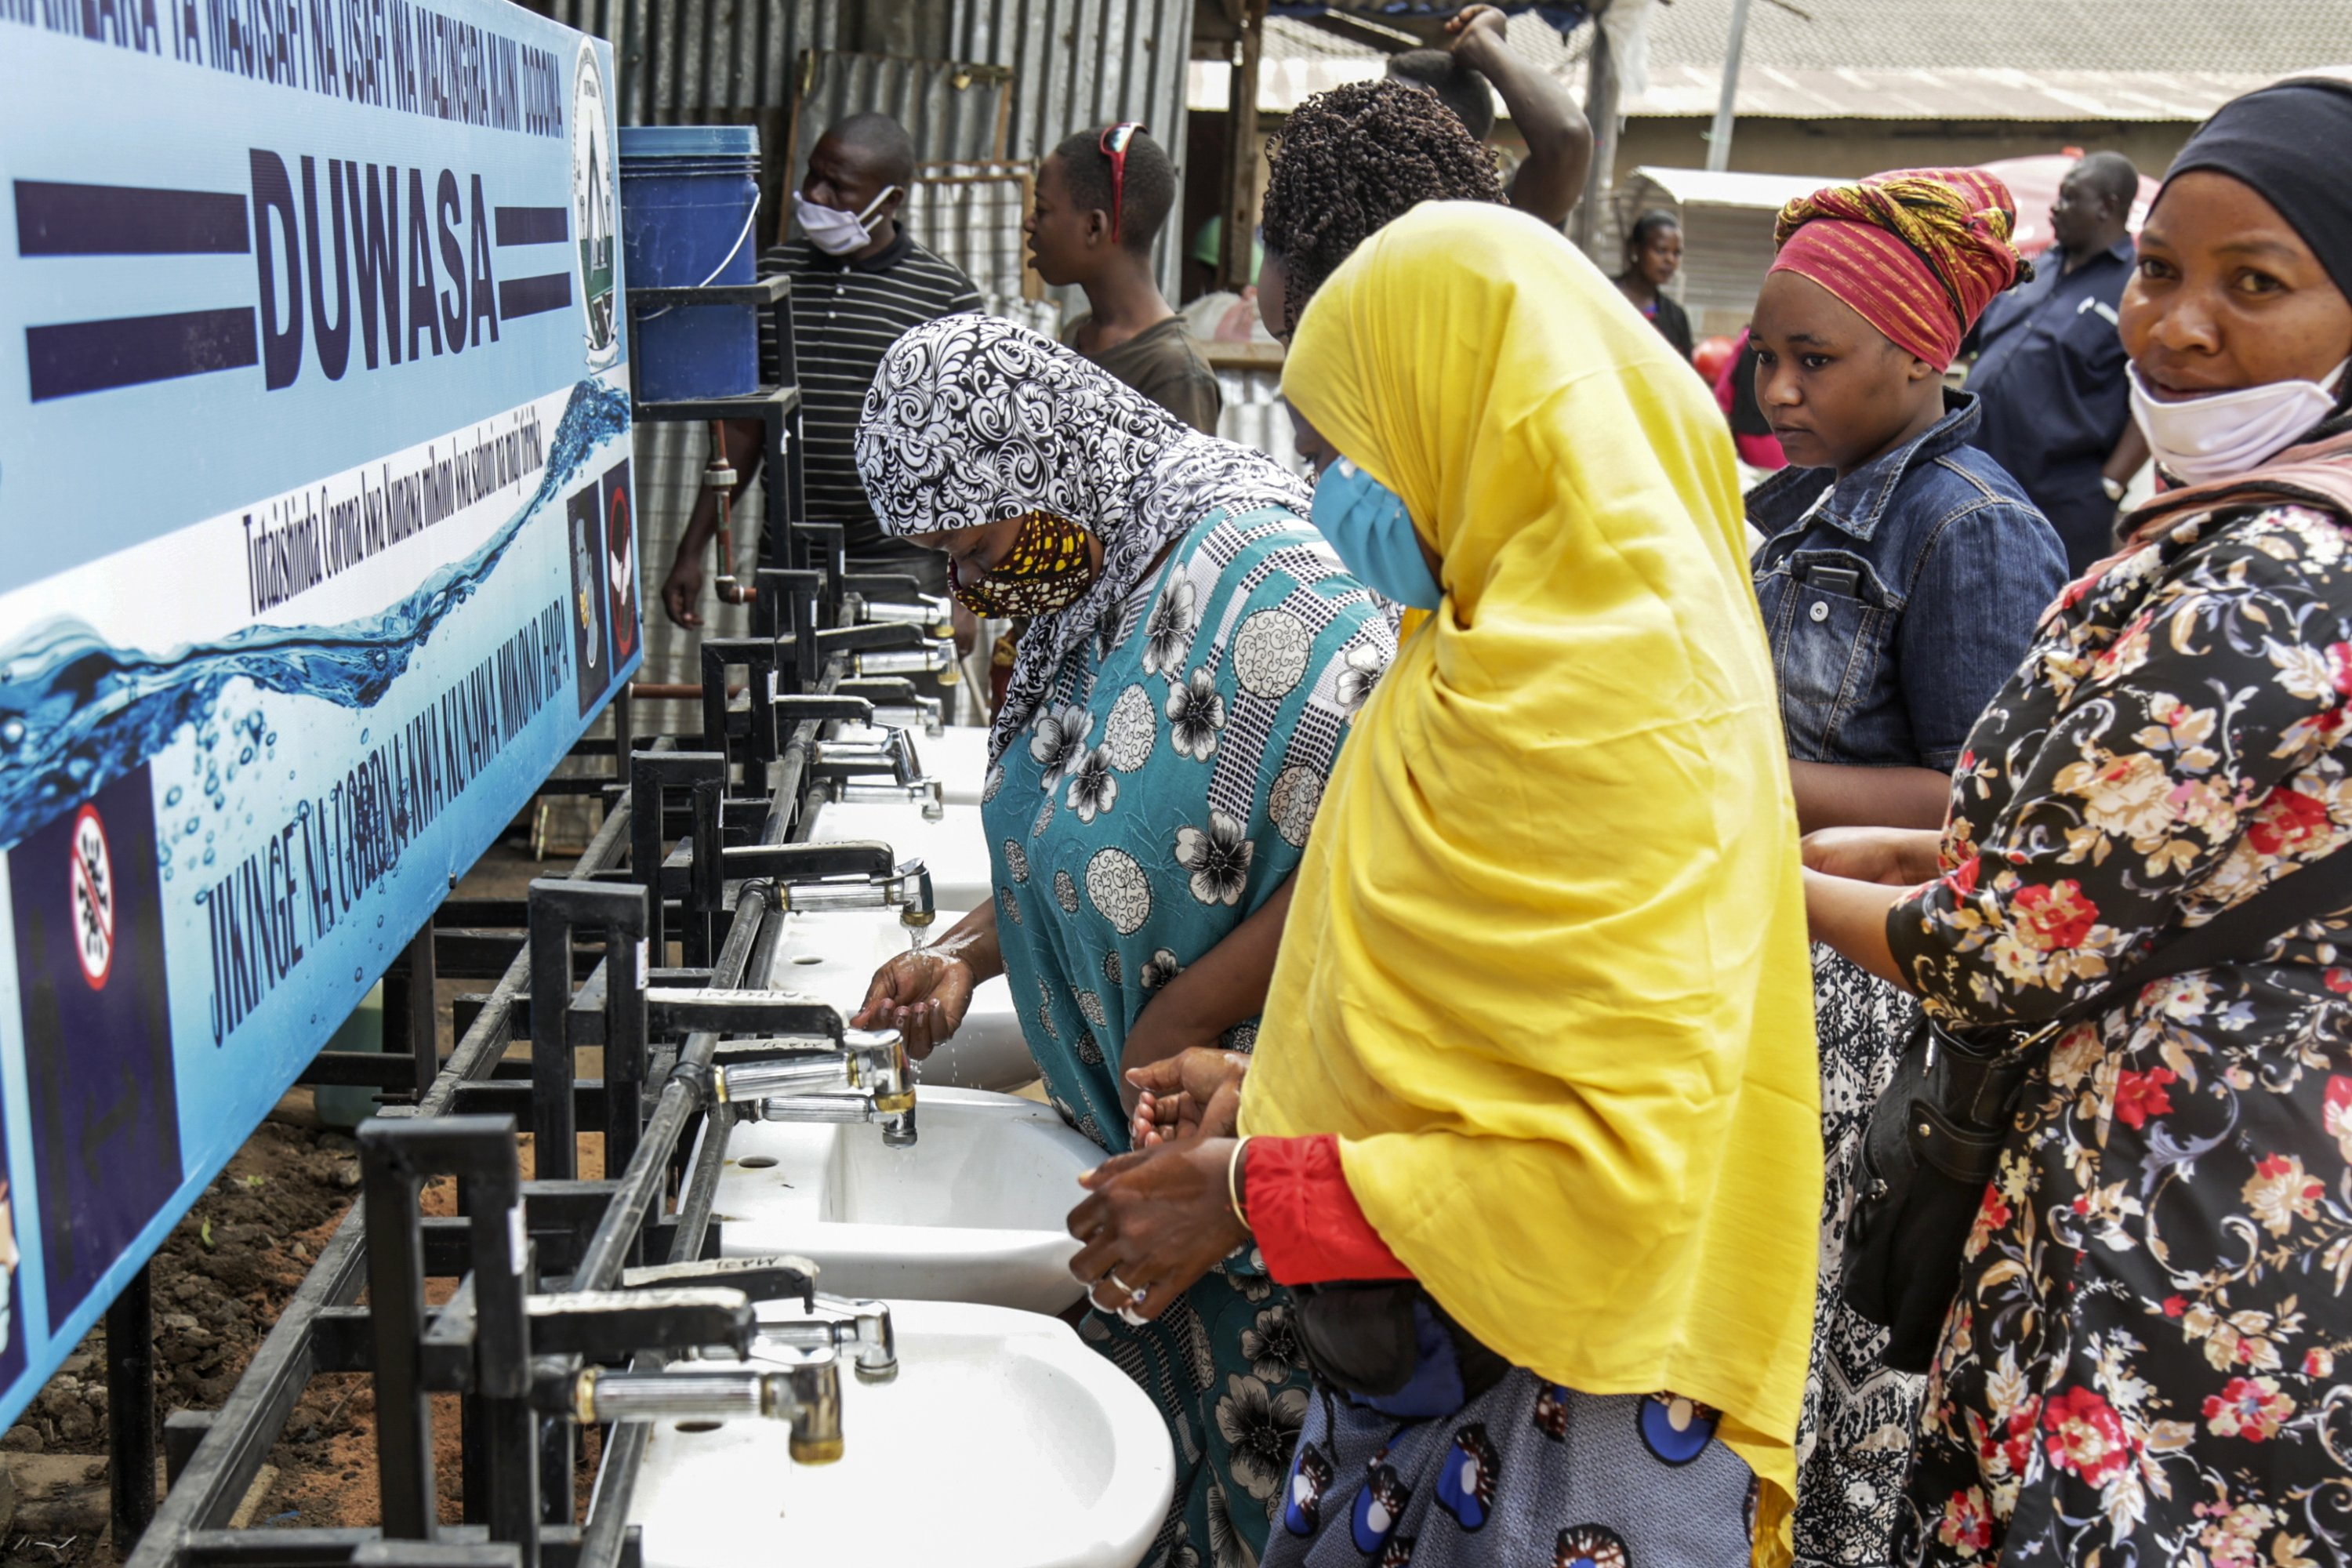 People use a hand-washing station installed for members of the public entering a market in Dodoma, Tanzania, May 18, 2020. (AP Photo)